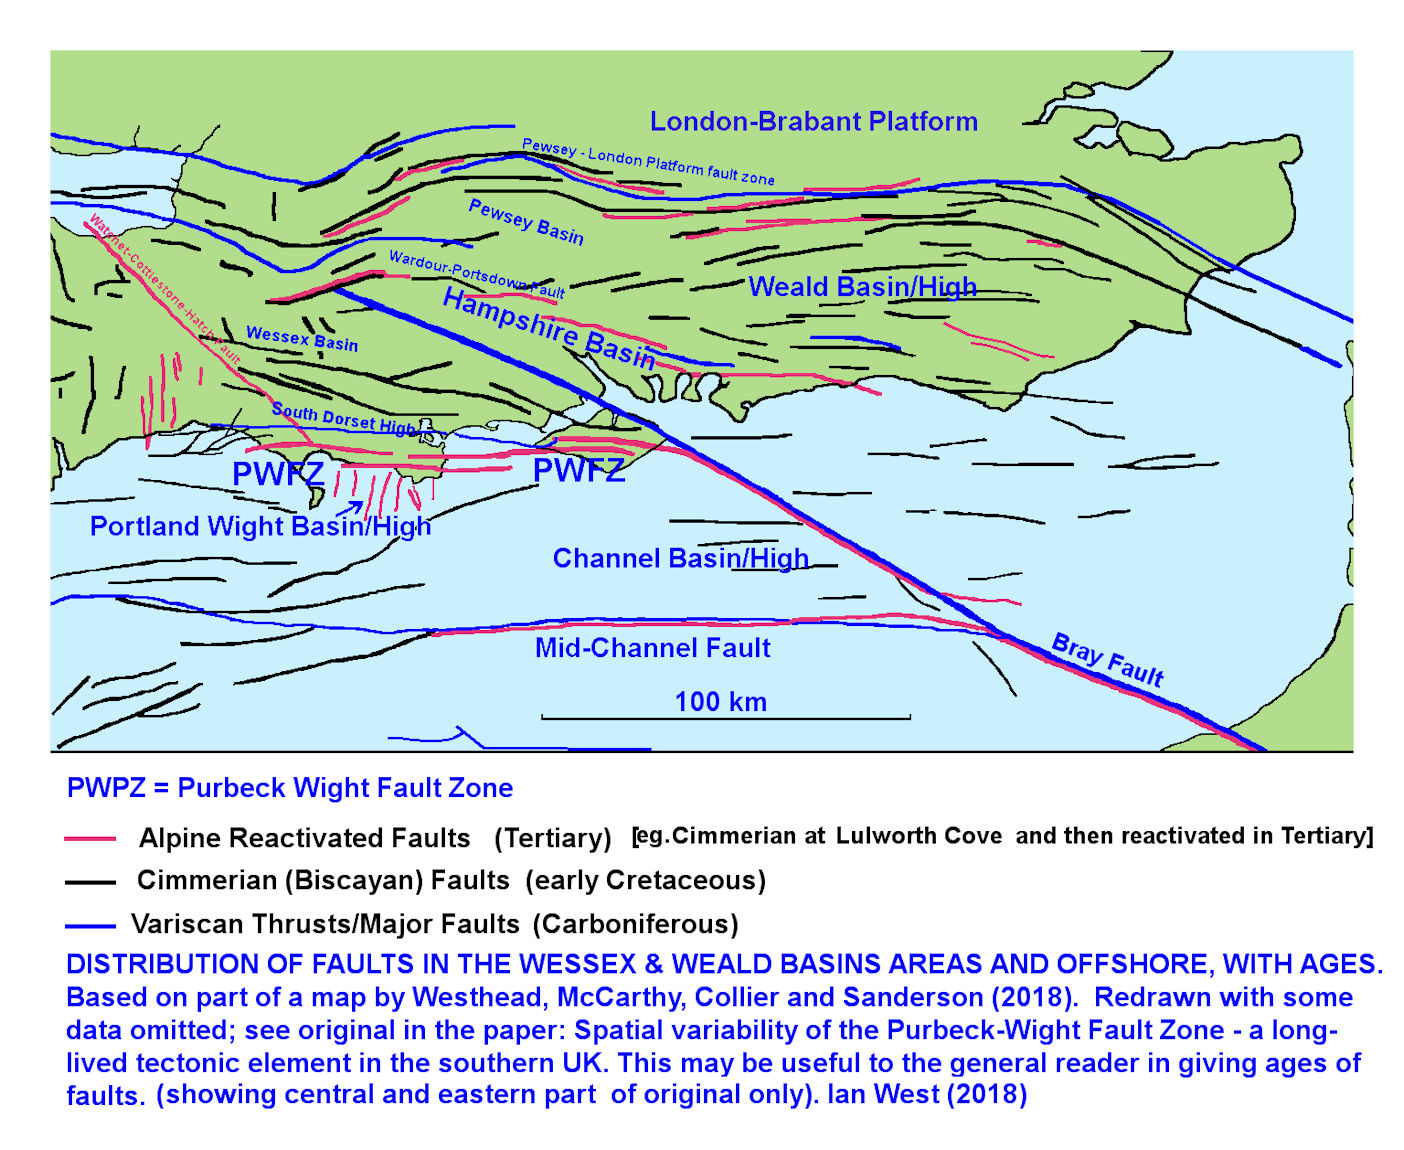 Fault pattern of part of southern England and the English Channel, modified and redrawn after Westhead, McCarthy, Collier and Sanderson, 2018